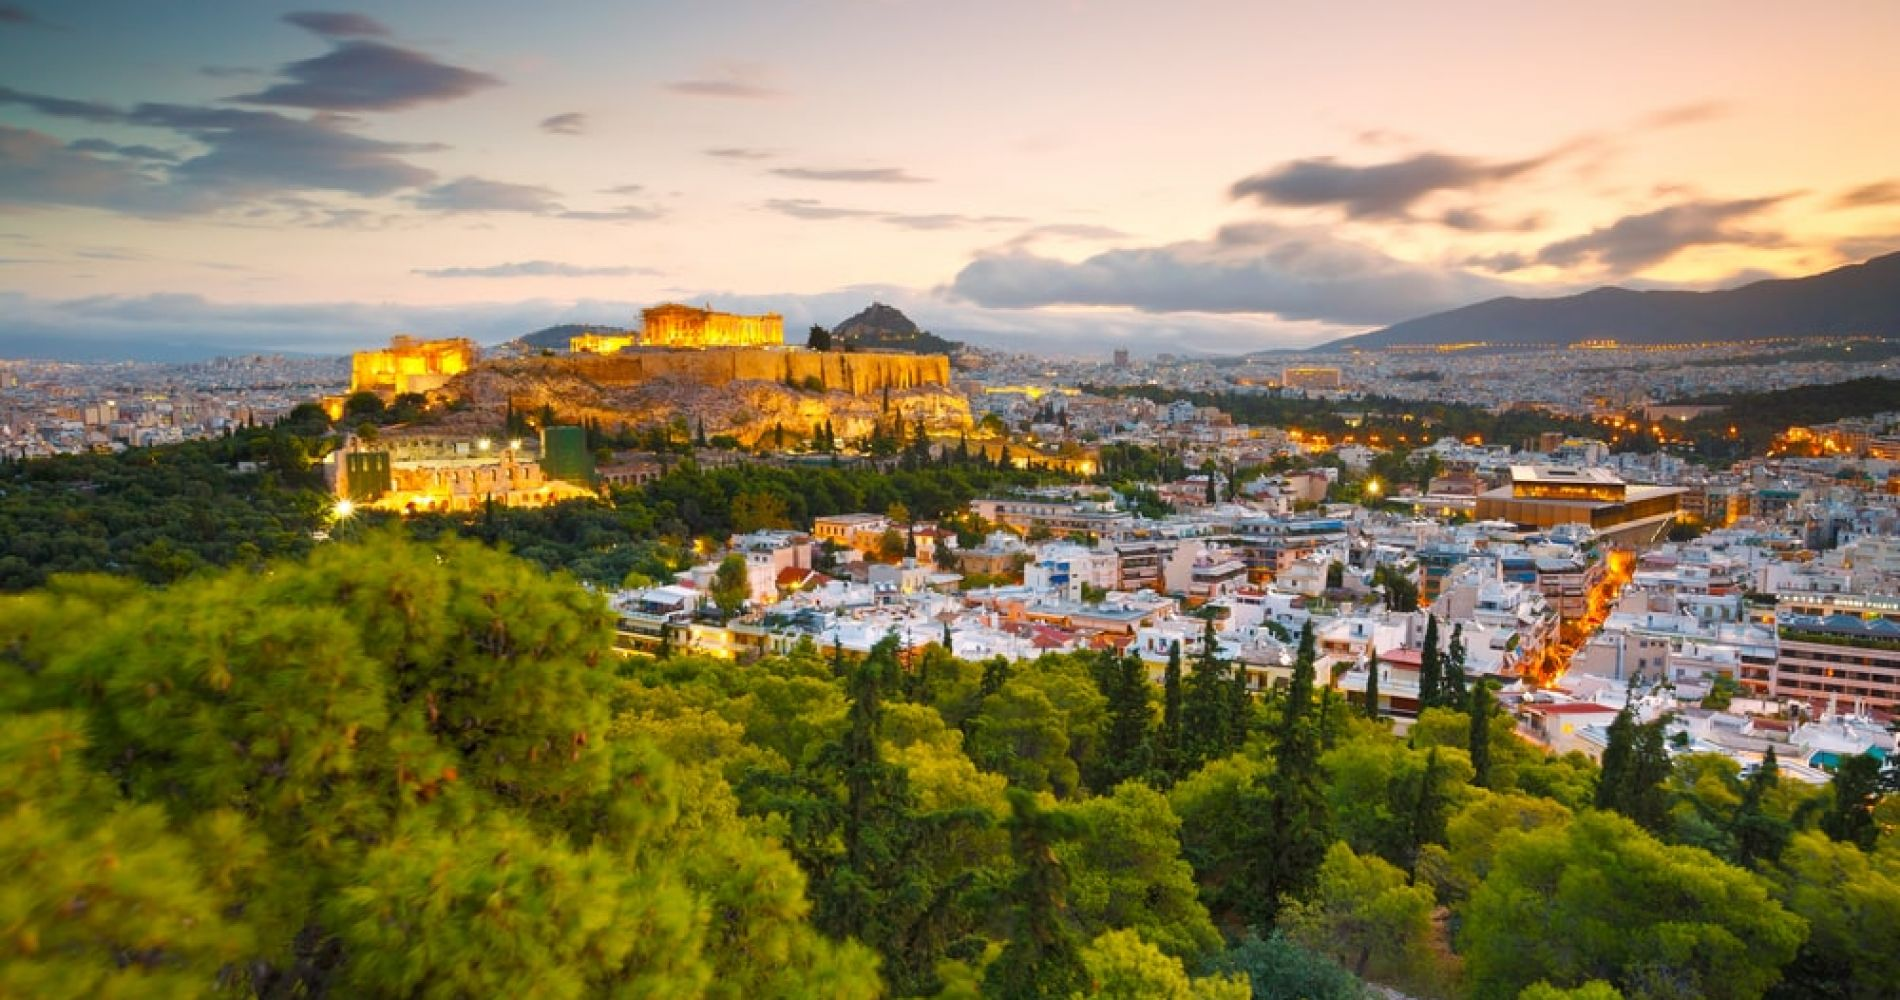 Enjoy Scenic Views from Filopappou Hill in Athens